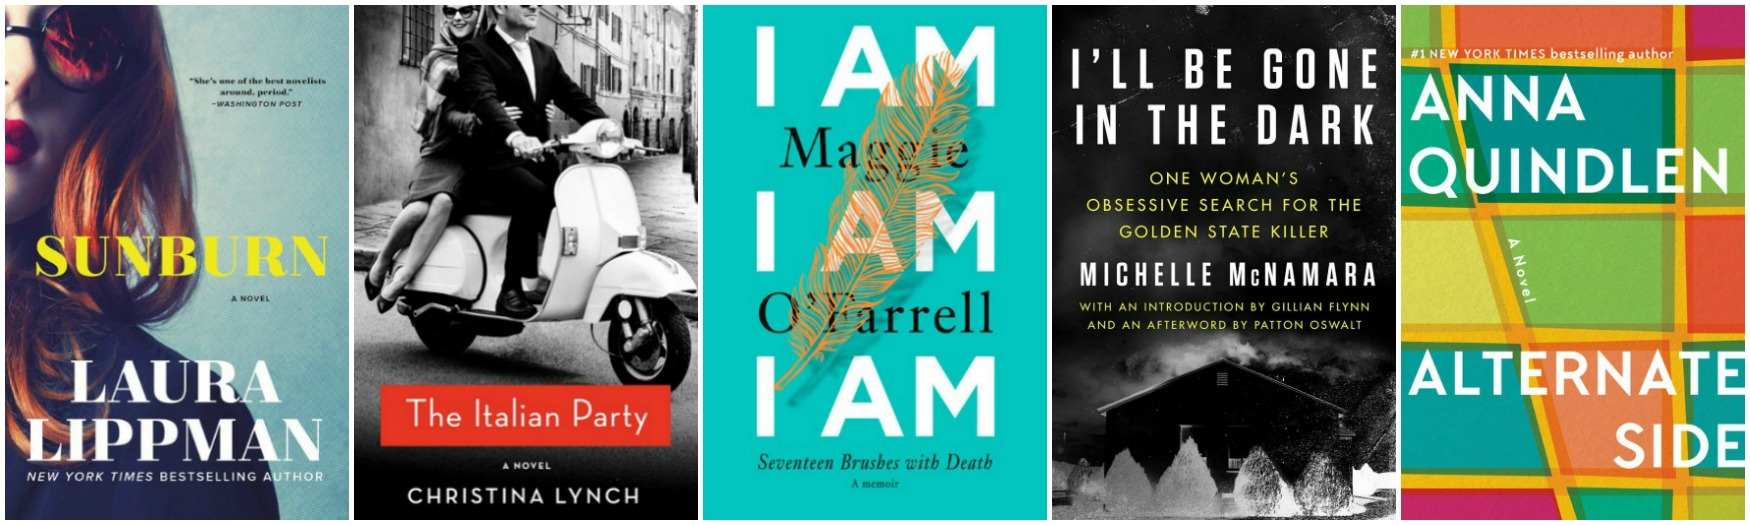 Novel Visits' A Cut Above Books for March 2018 - Sunburn by Laura Lippman, The Italian Party by Christina Lynch, I Am I Am I Am by Maggie O'Farrell, I'll Be Gone in the Dark by Michelle McNamara, and Alternate Side by Anna Quindlen